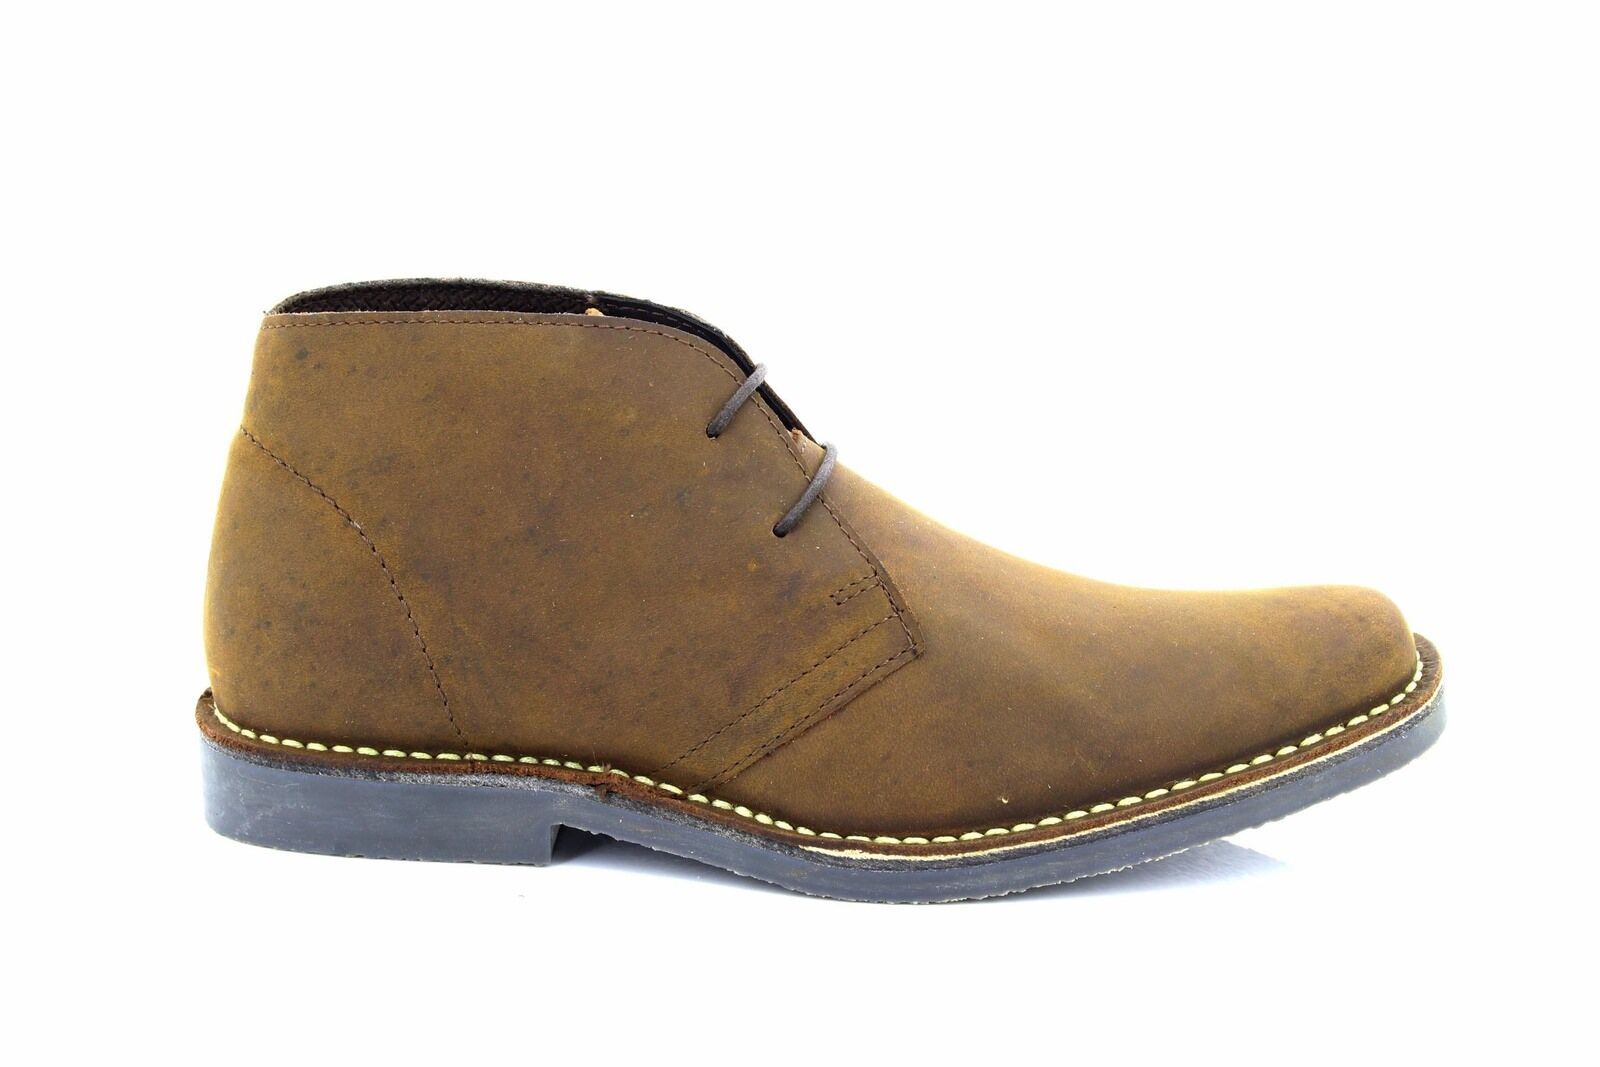 Roamers M420 Classic Casual Stitched Sole Lace Up Desert Boots Brown Pull Up Lea